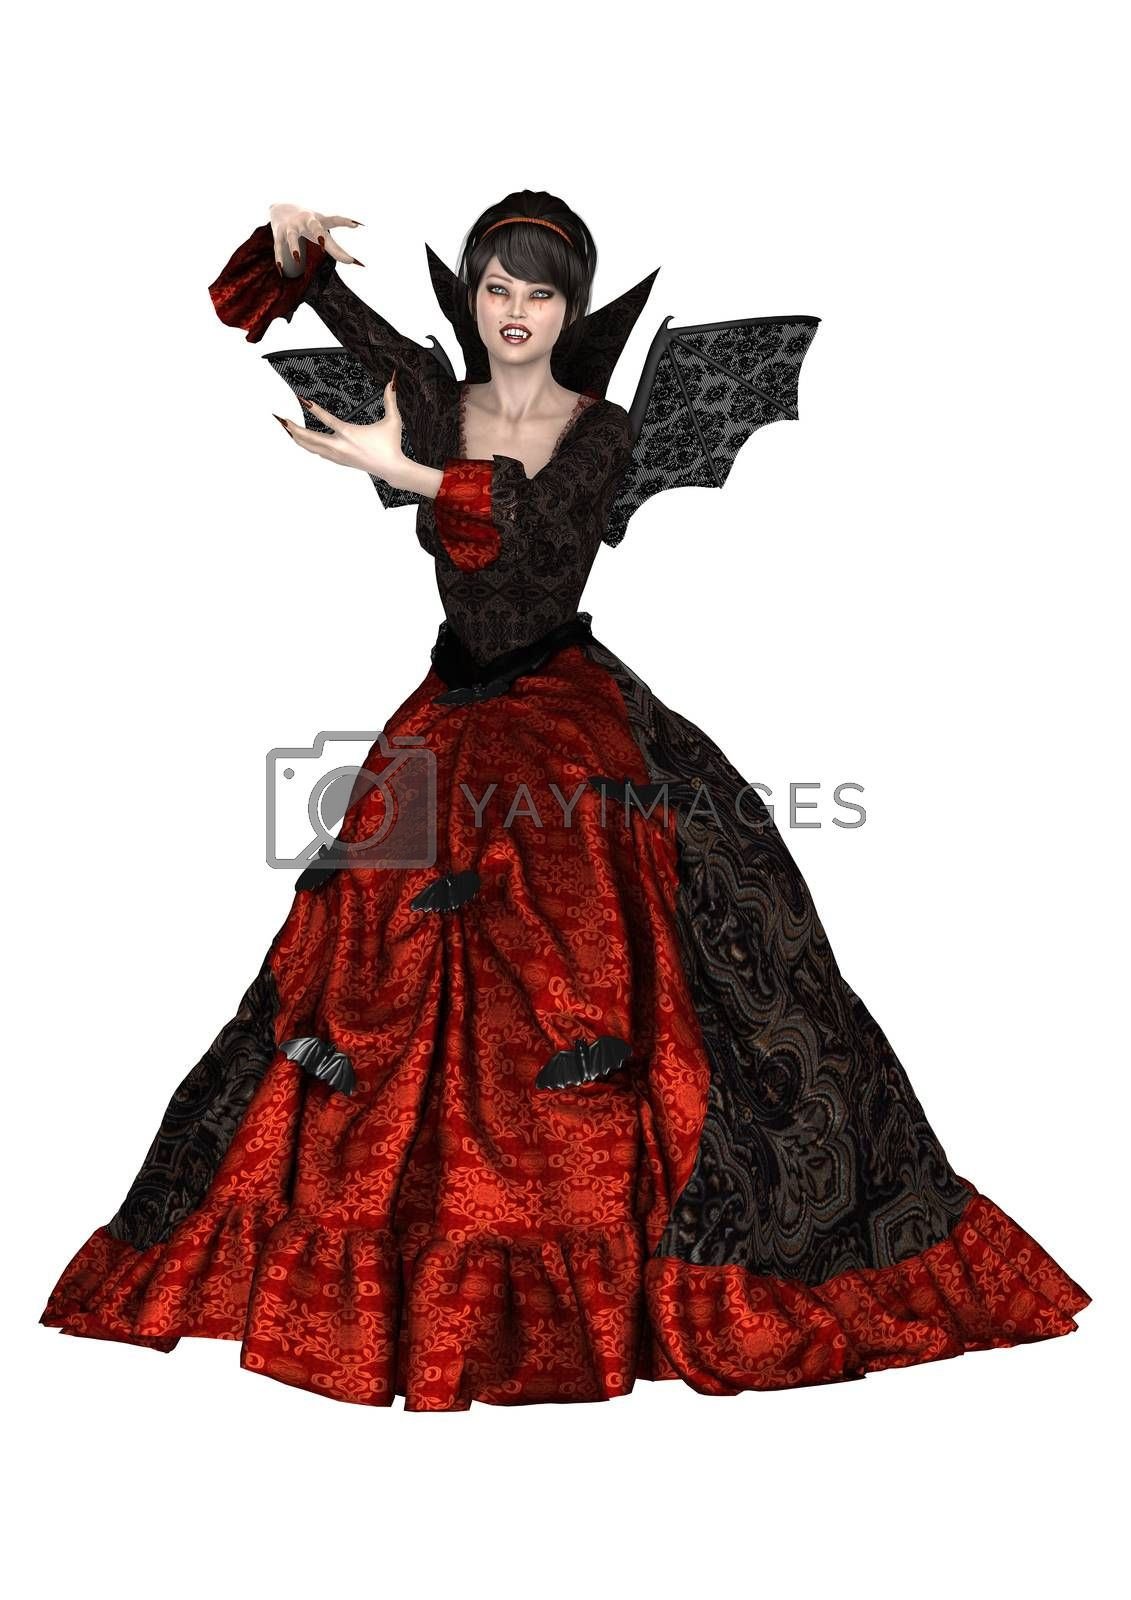 3D digital render of a beautiful witch isolated on white background